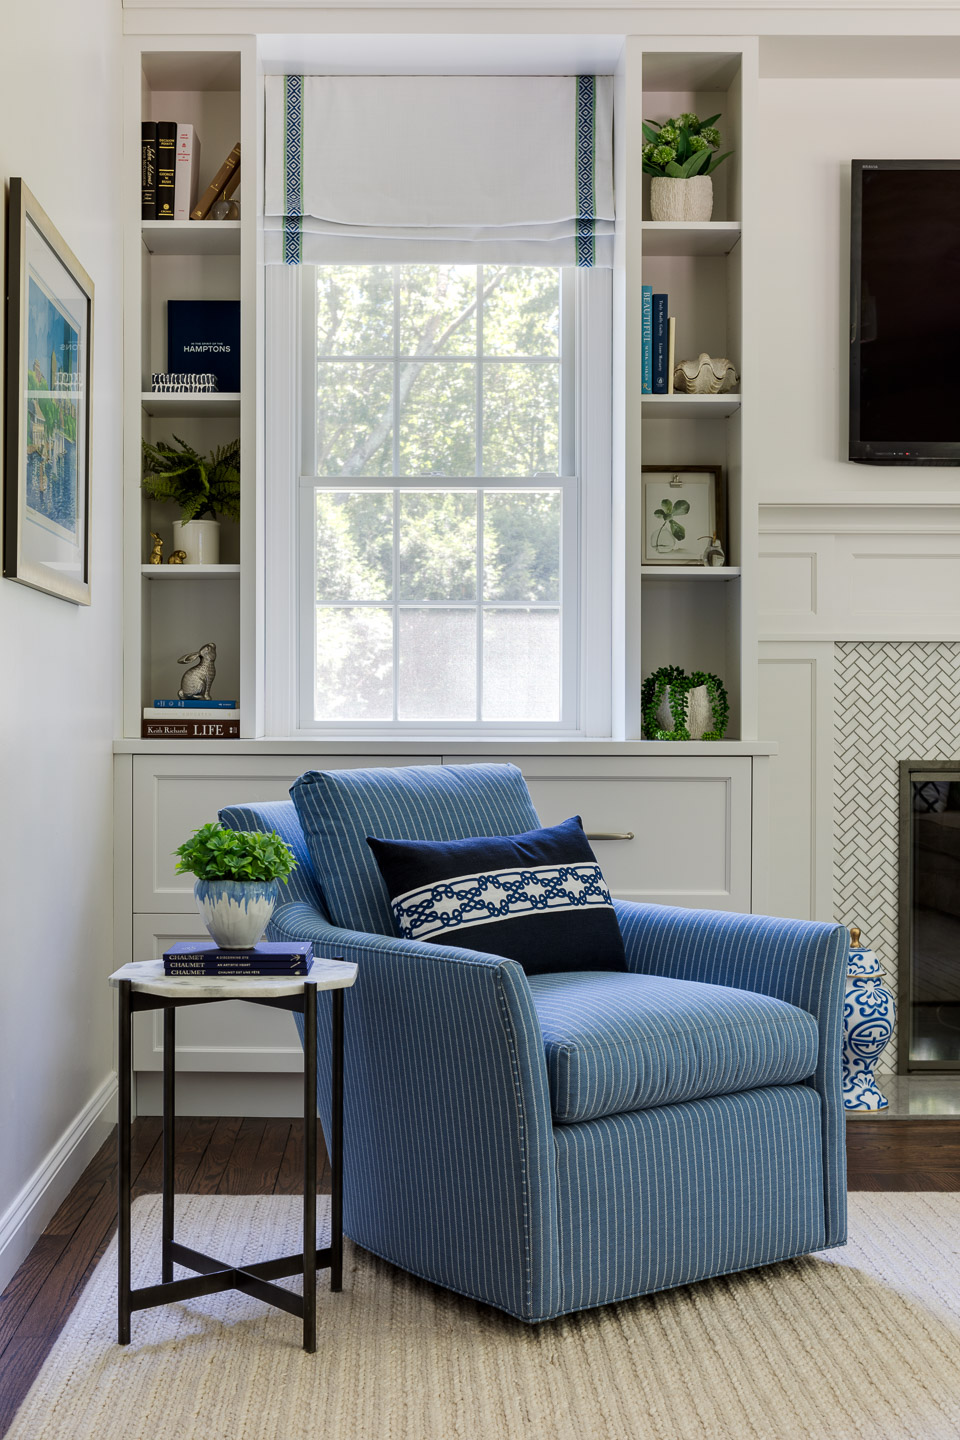 The Wickford Highlands Project - Living room details